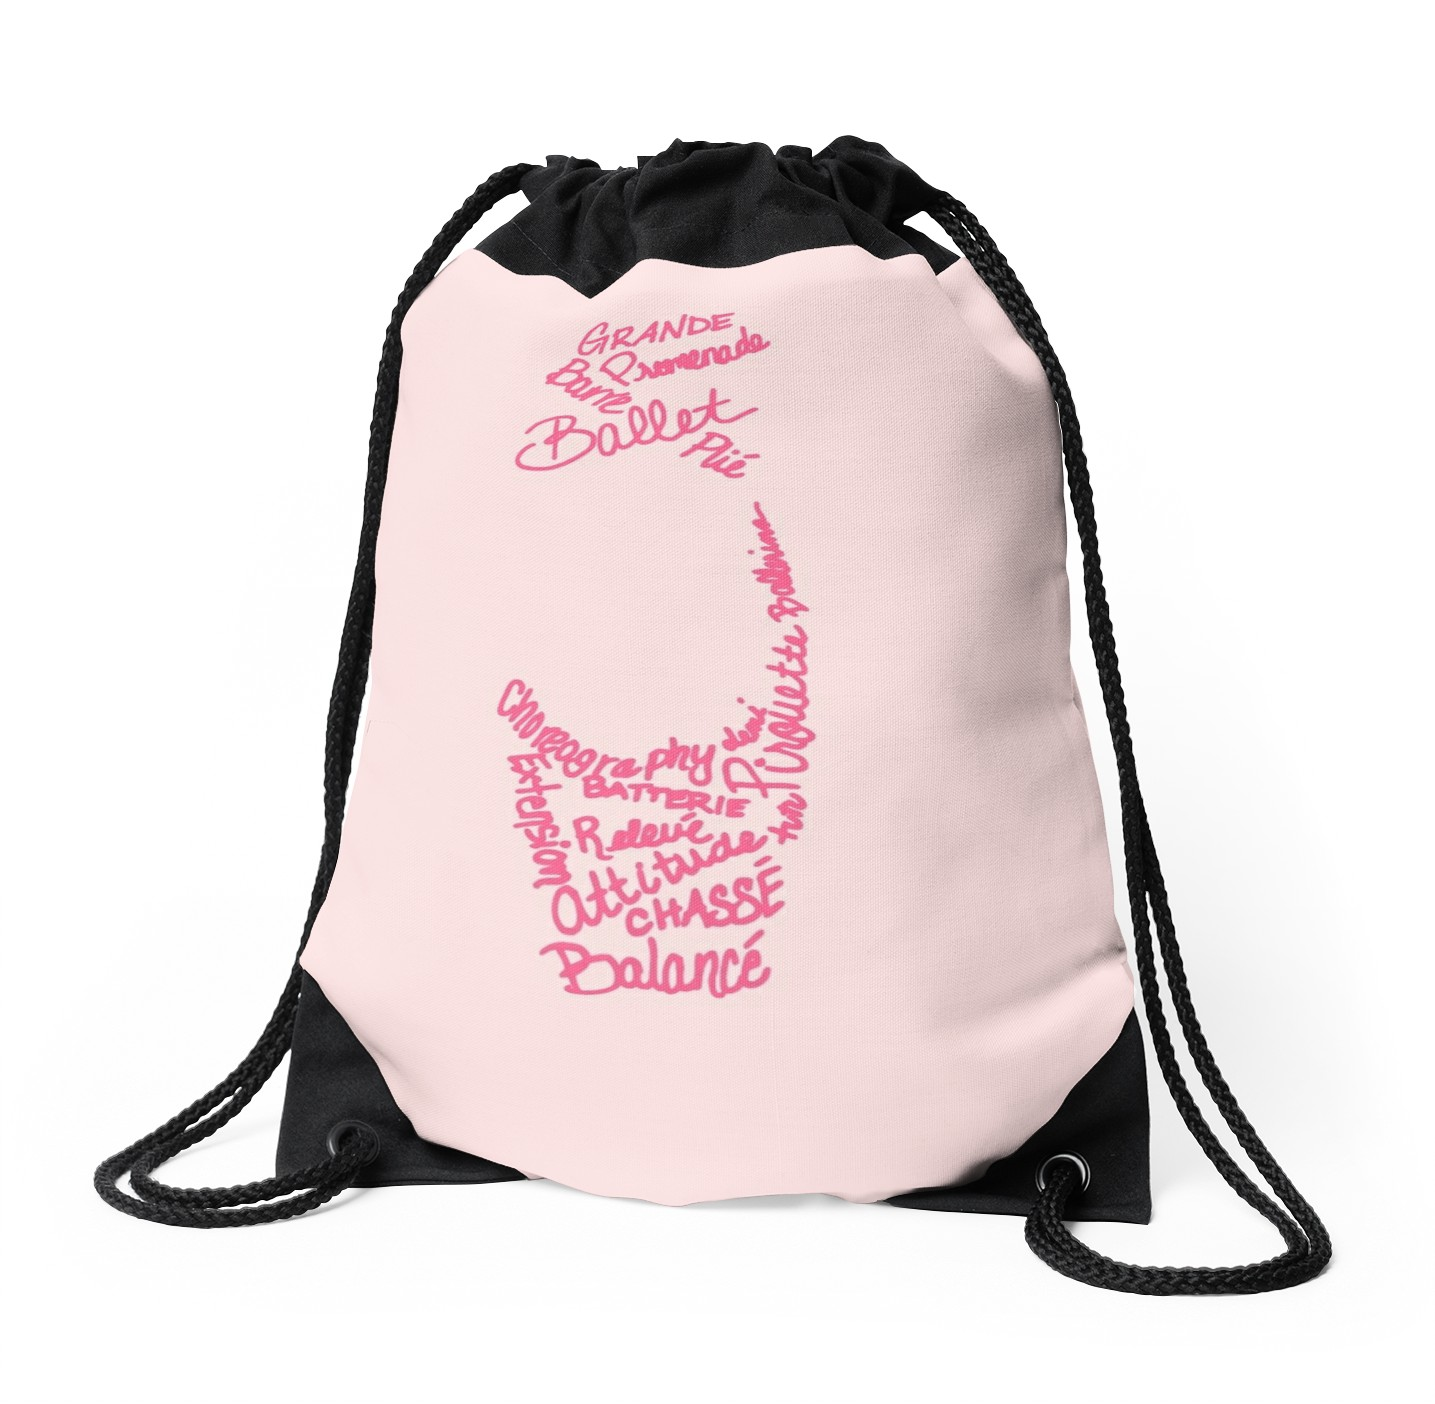 1435x1404 Pink Ballet Pointe Shoe Silhouette Filled Term Words Drawstring